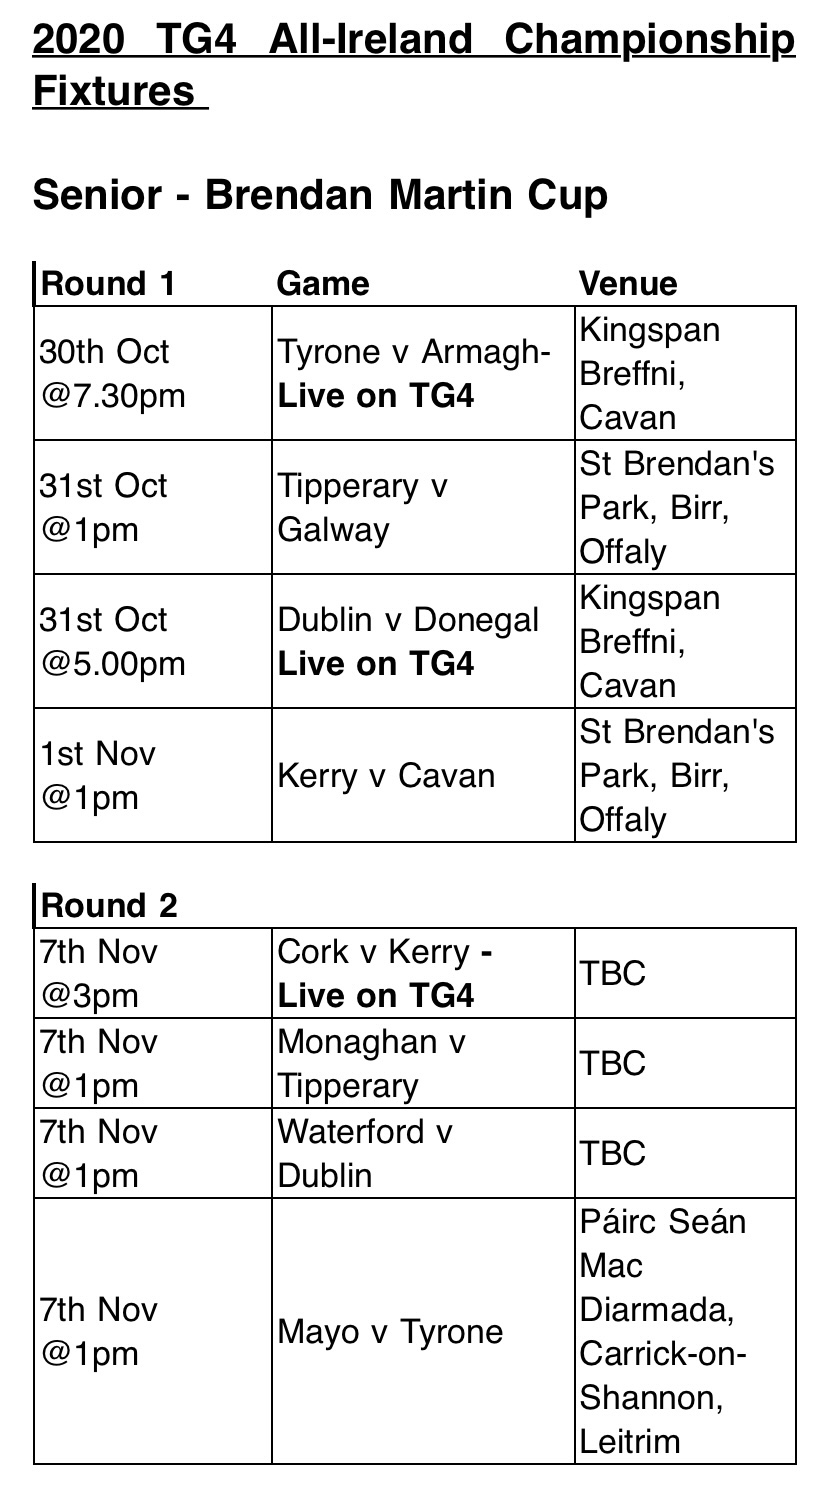 The fixtures for the 2020 TG4 All Ireland ladies football championships